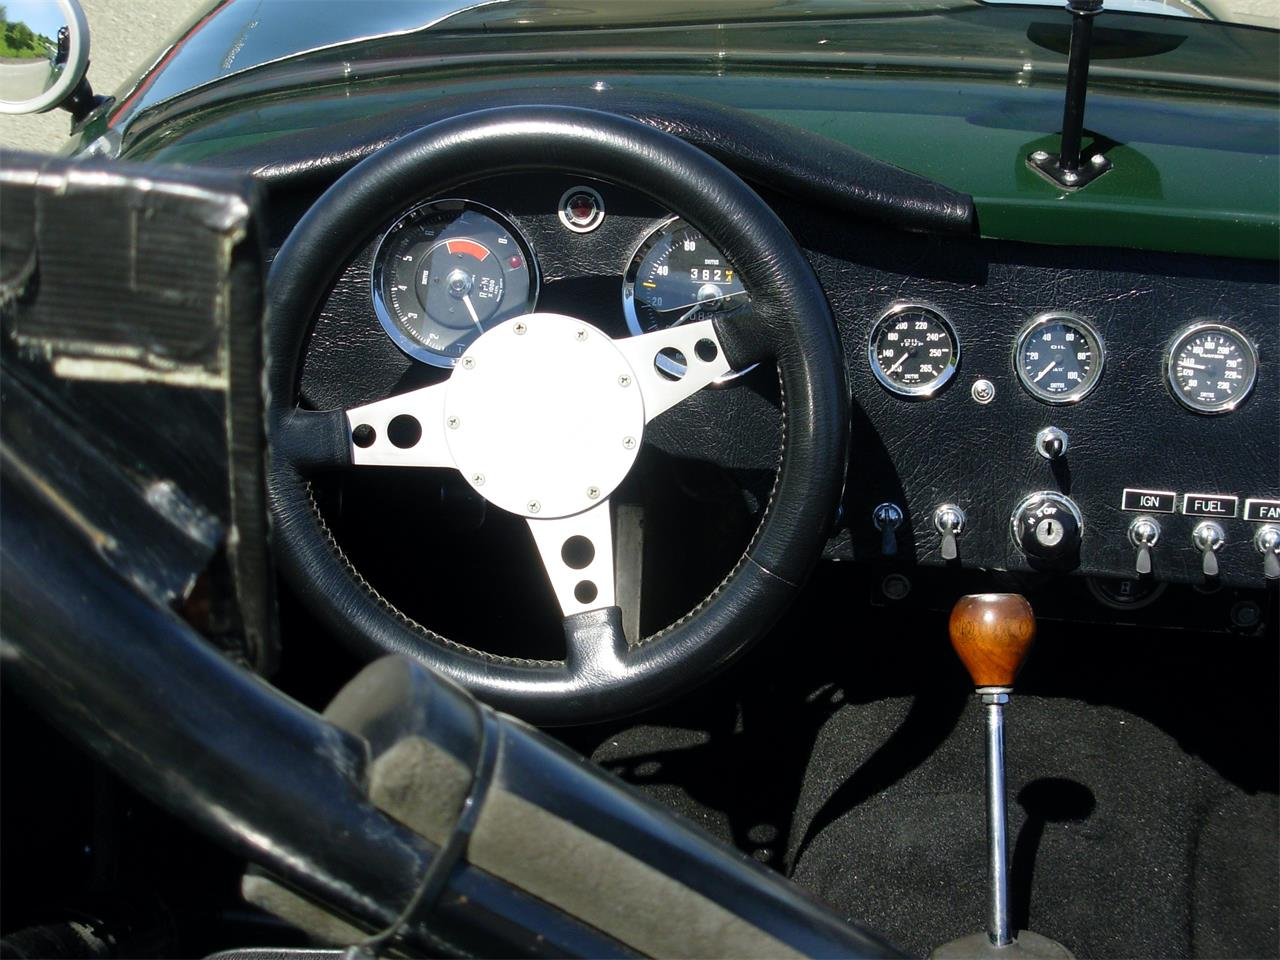 1963 Elva Courier Mark III for sale in Berkeley, CA – photo 4